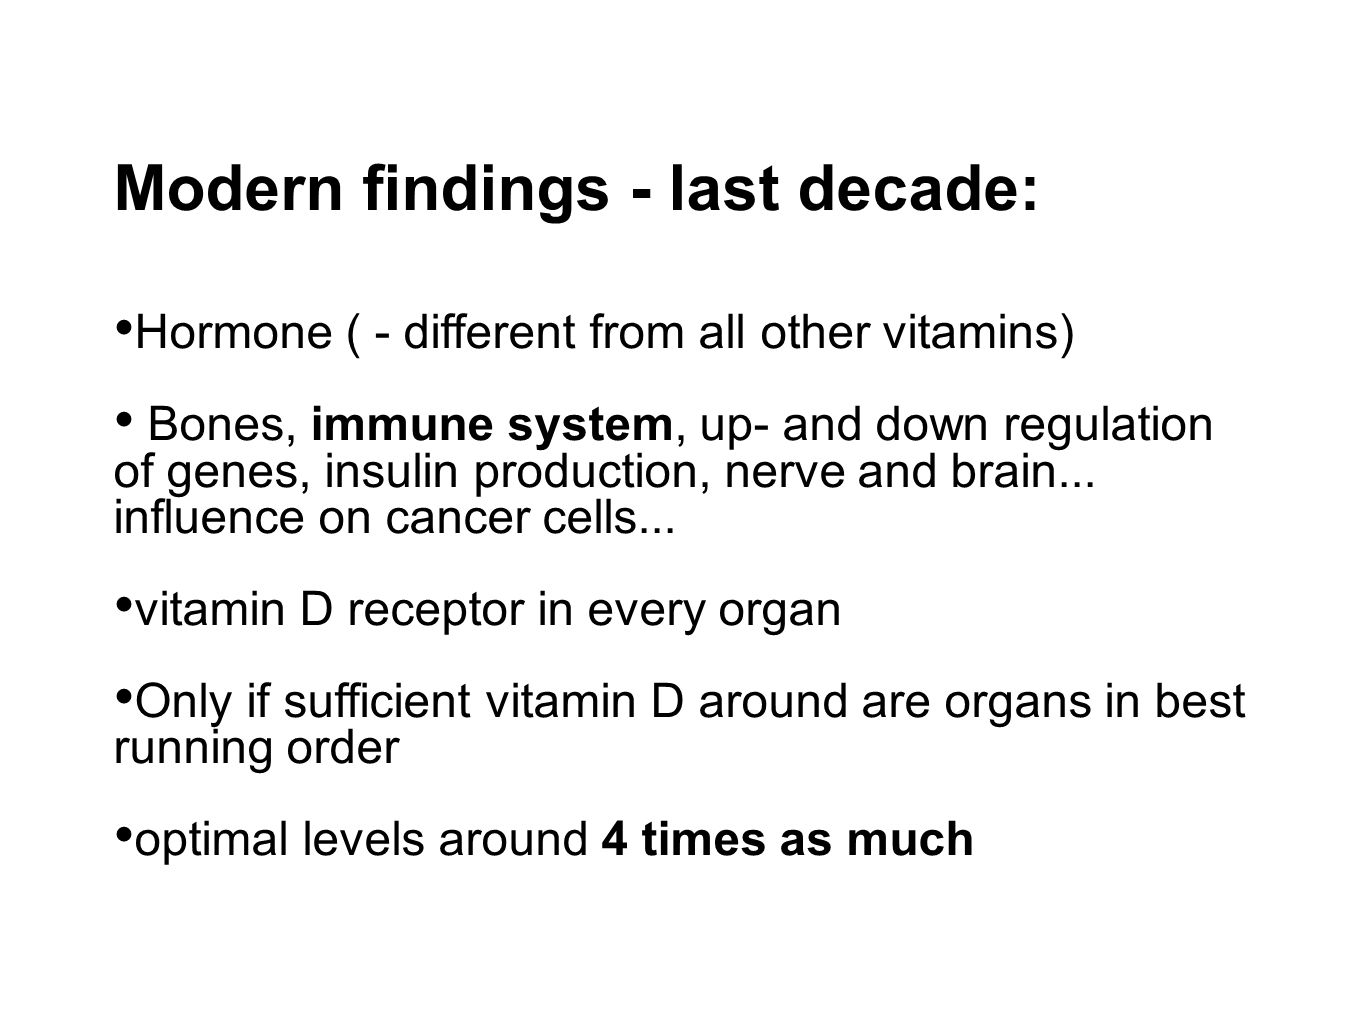 Modern findings - last decade: Hormone ( - different from all other vitamins) Bones, immune system, up- and down regulation of genes, insulin production, nerve and brain...